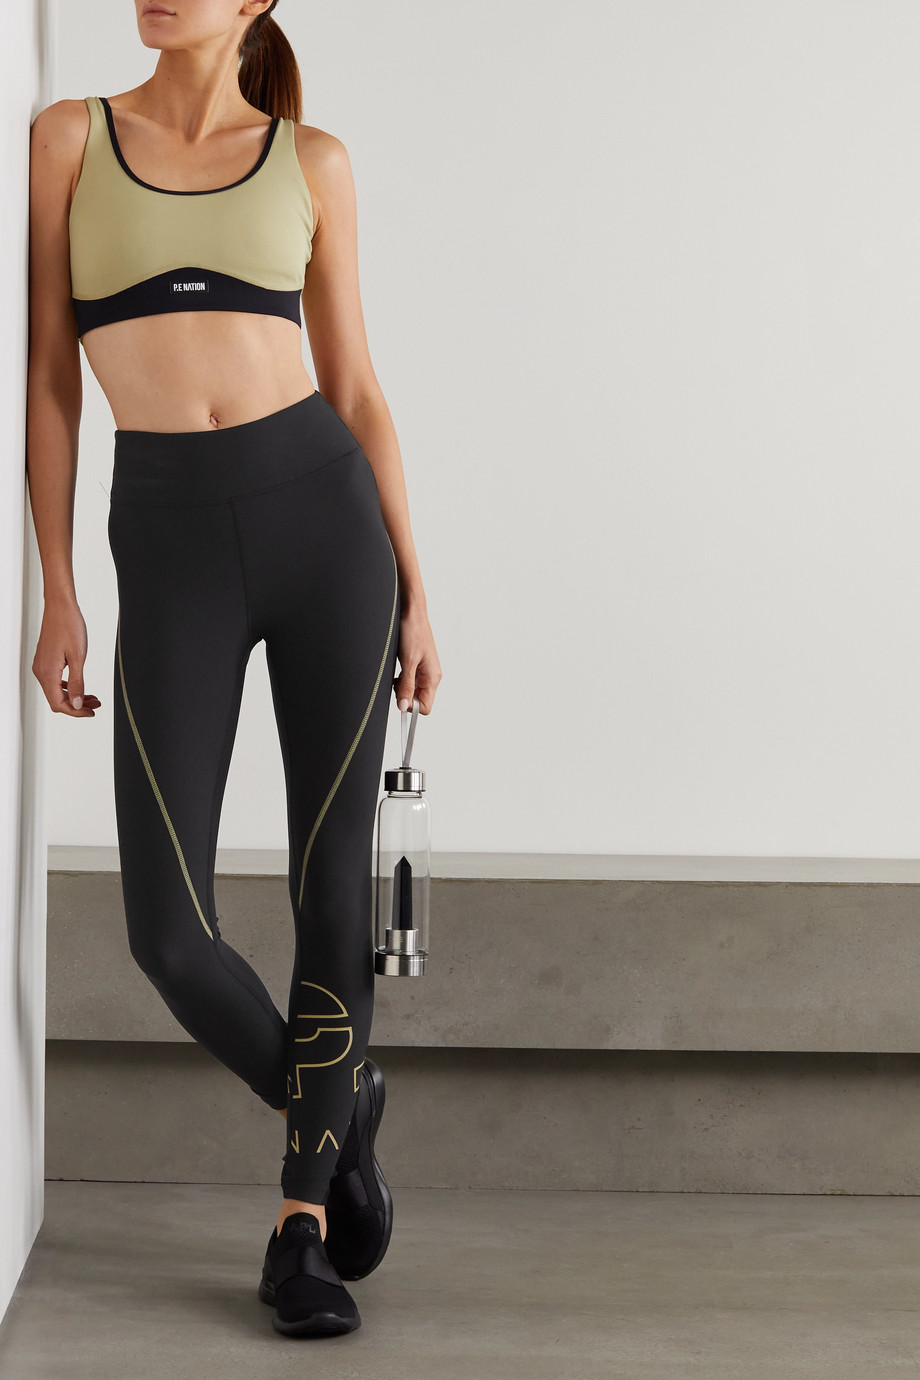 P.E NATION Point Race printed stretch leggings